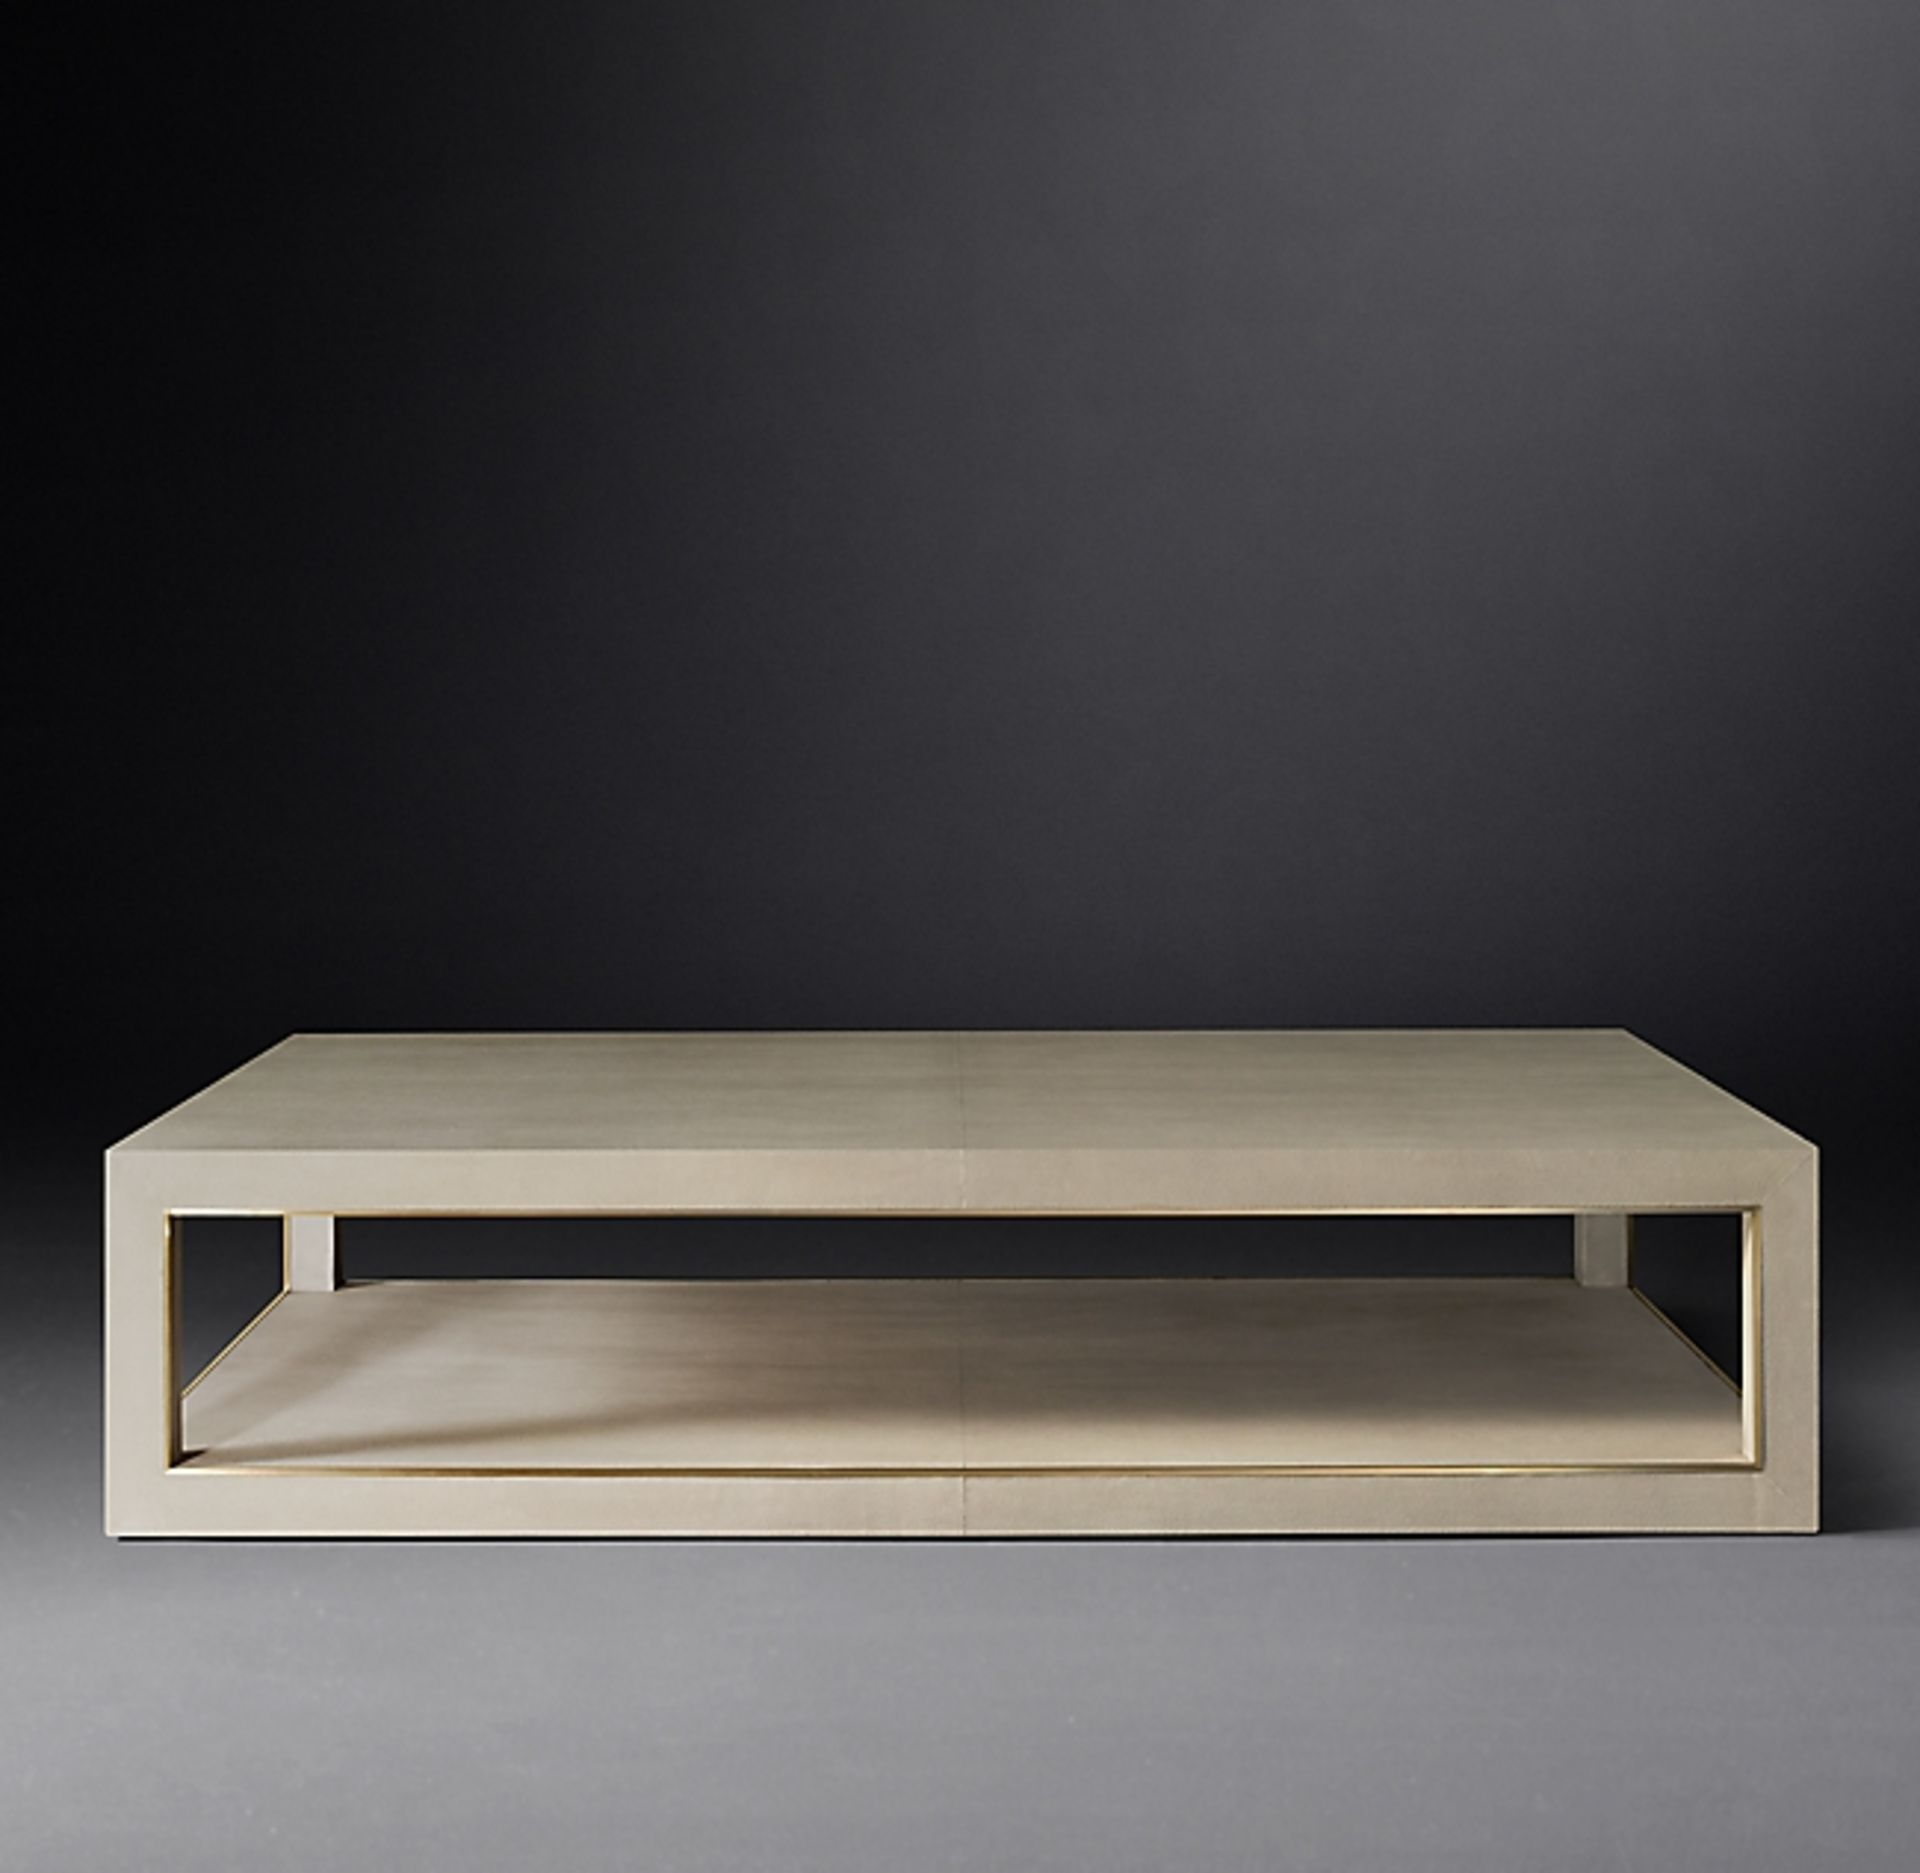 Cela white Shagreen 67 Rectangular Coffee Table Crafted Of Shagreen Embossed Leather With The